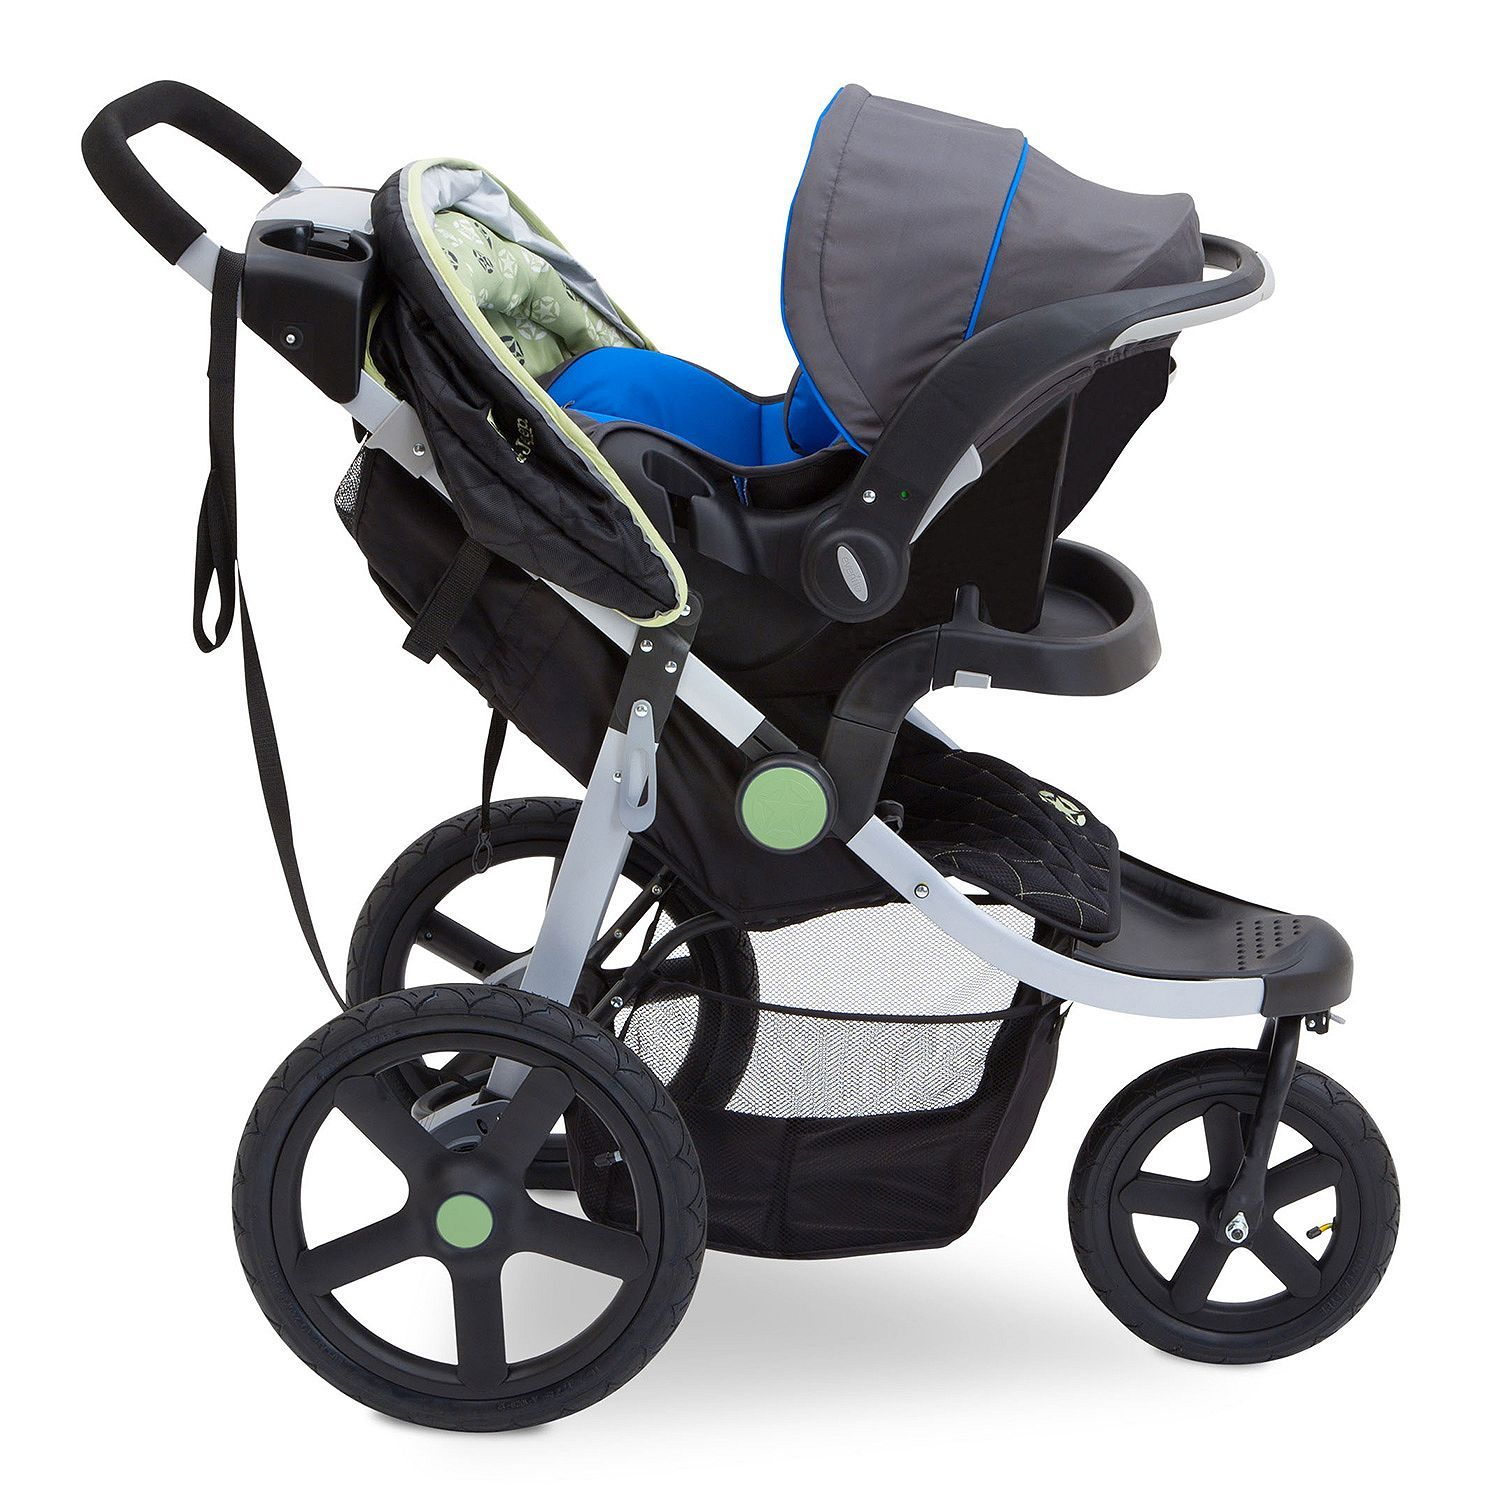 J Is For Jeep Brand Adventure All Terrain Jogging Stroller Choose Your Color Jeep Stroller Jogger Stroller Stroller